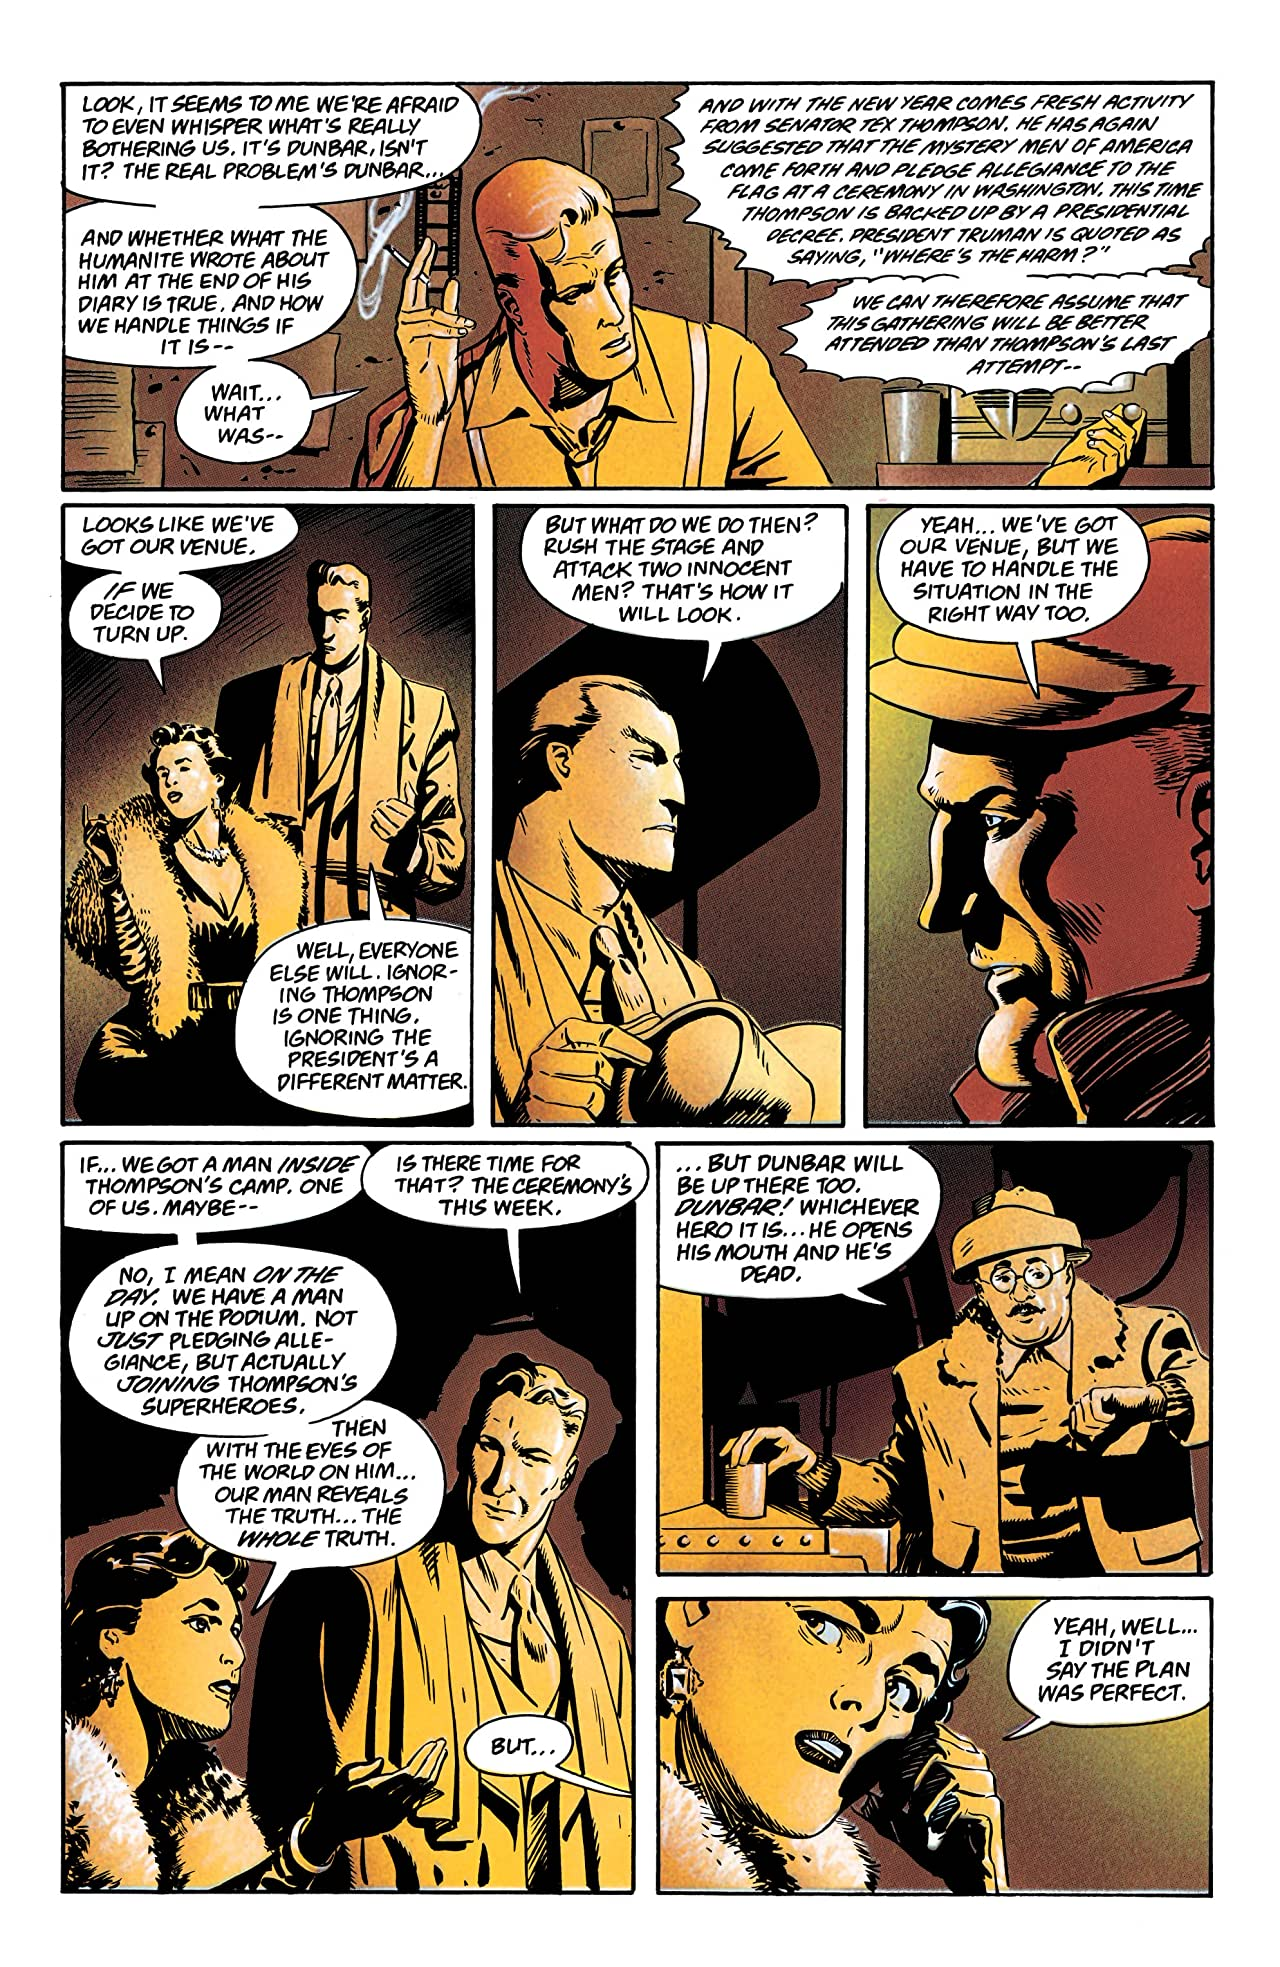 The Golden Age #4